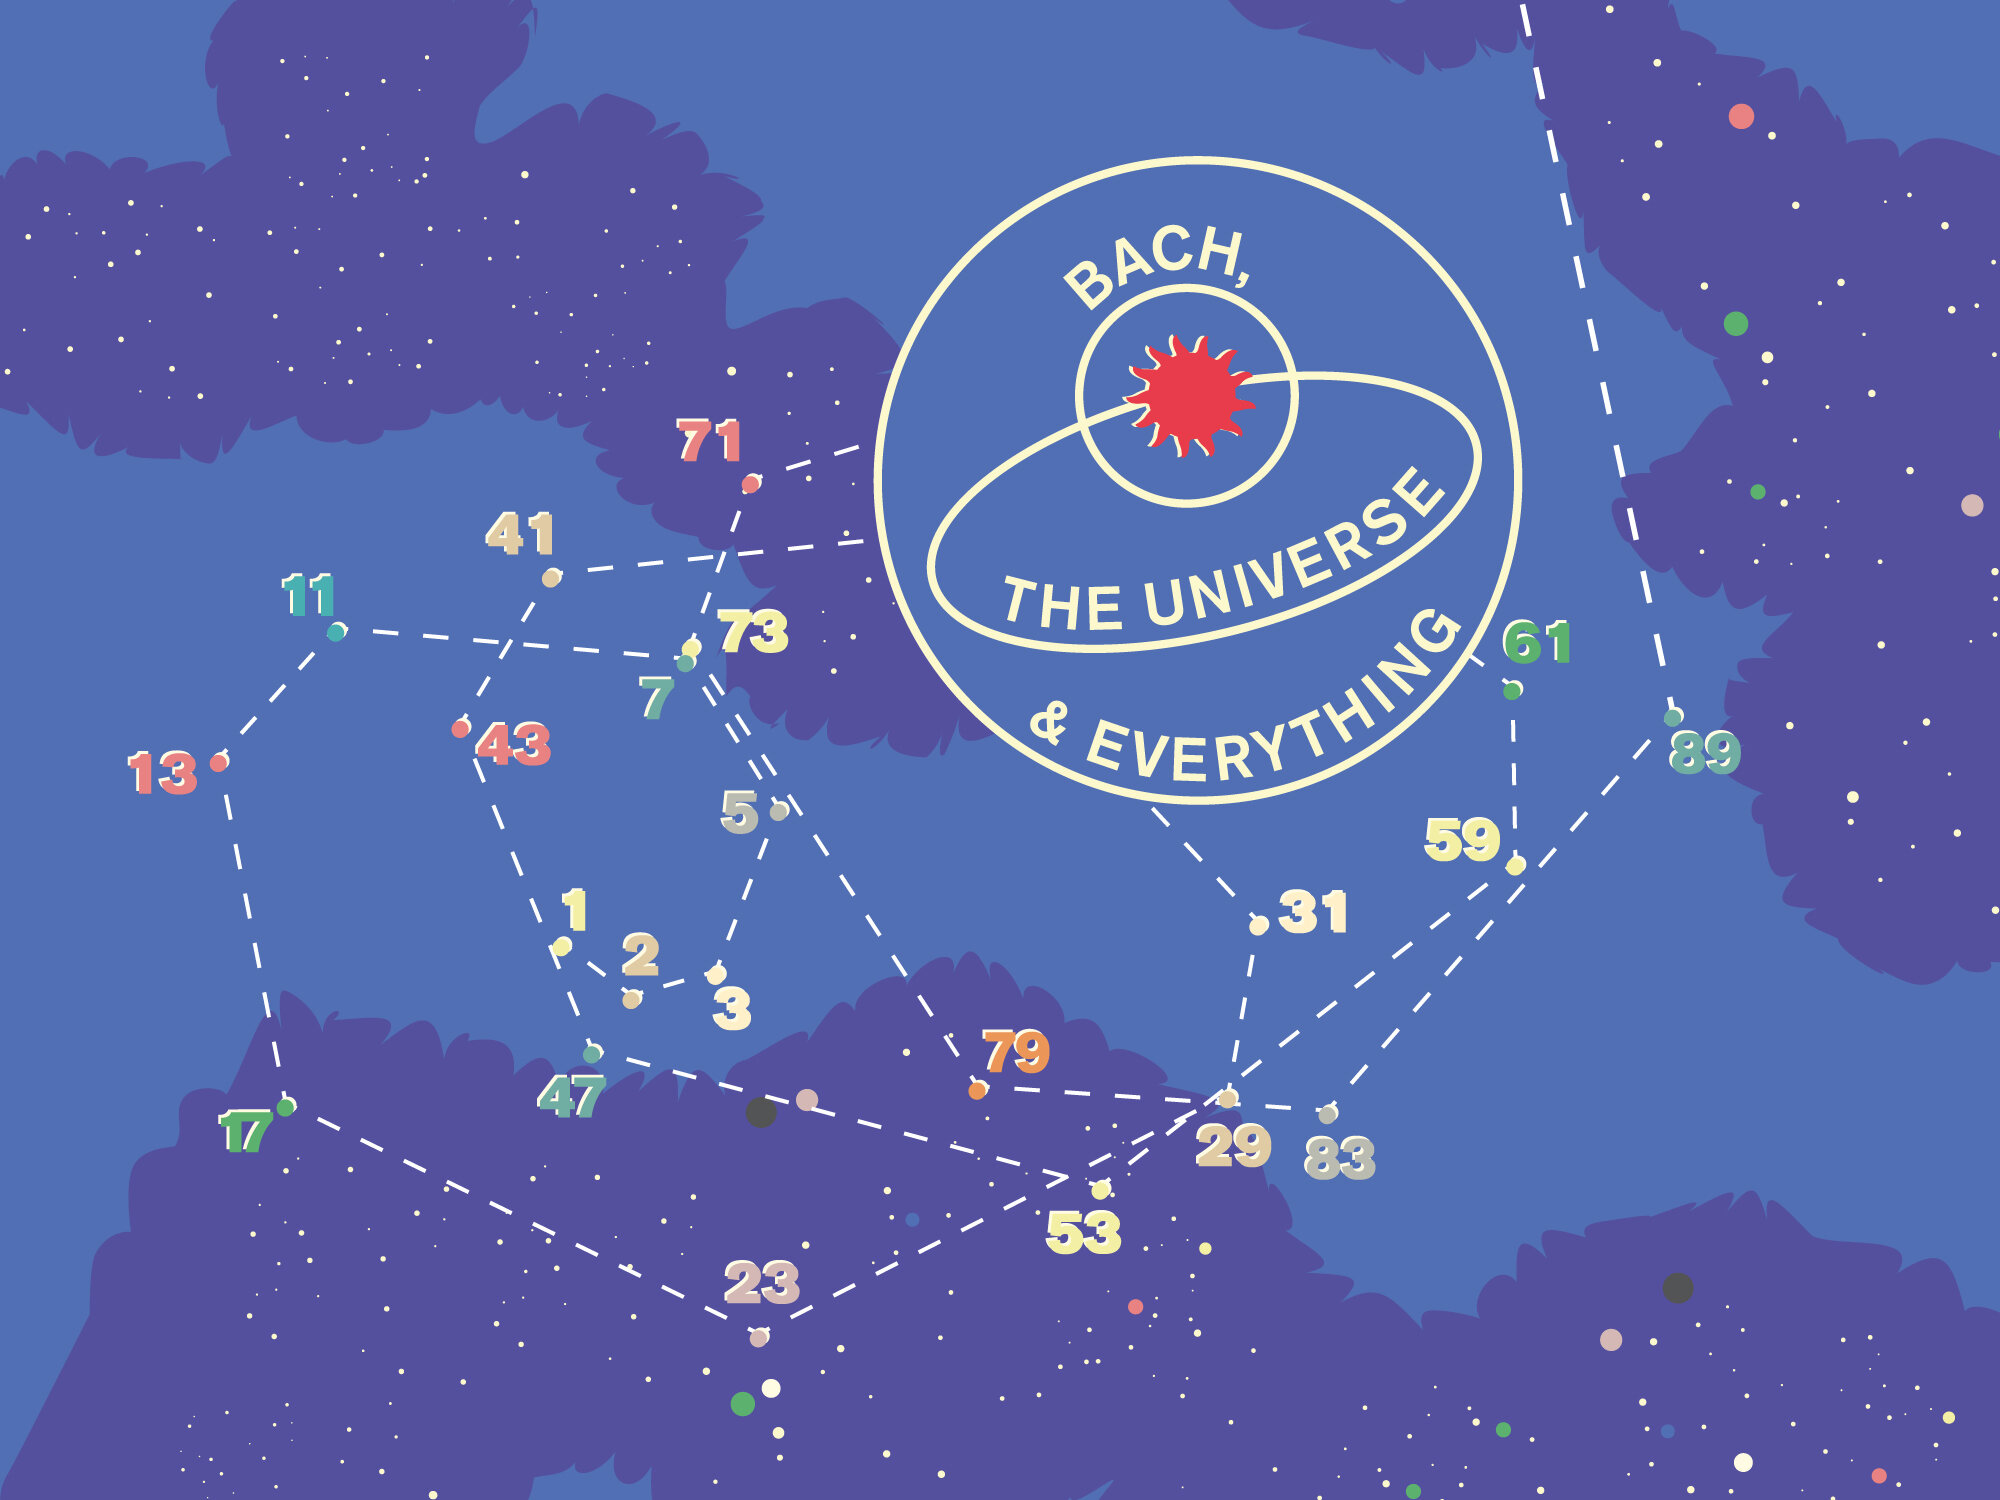 Bach, the Universe and Everything - Saturday 12 October at 7pm, Sunday 13 October at 5.30pm, £15-£35St George's, Bristol & Mathematical Institute, University of OxfordFresh from a successful run in London, the Orchestra of the Age of Enlightenment brings its unique mix of baroque music and science to Bristol and Oxford for the first time. There's going to be talks about astronomy in Bristol and applied mathematics in Oxford, plus sacred vocal music by Bach, and inspirational readings.